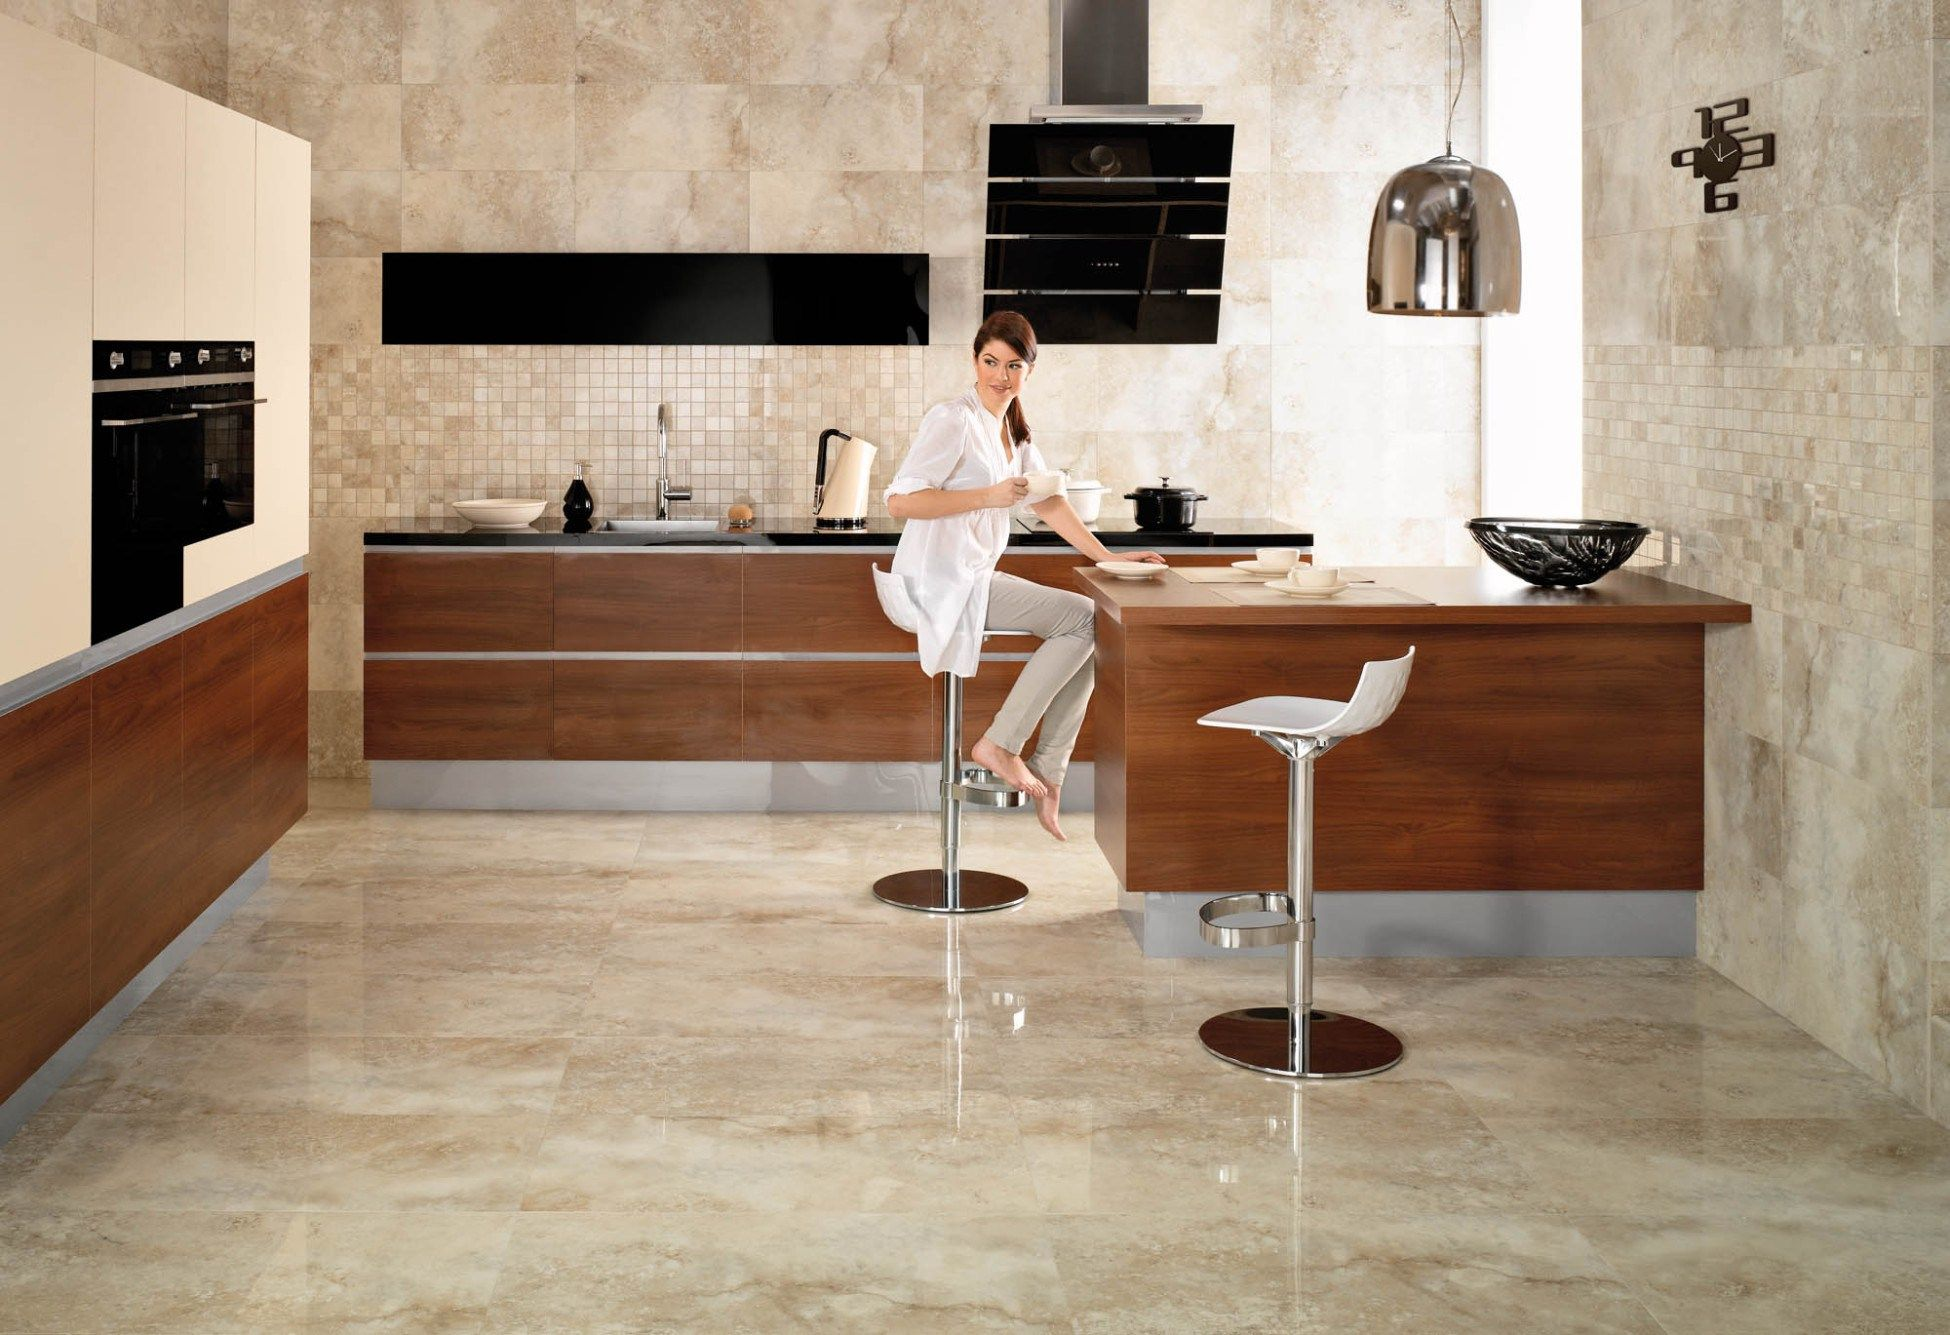 floor tiles discount tile flooring tile pictures home flooring home ...